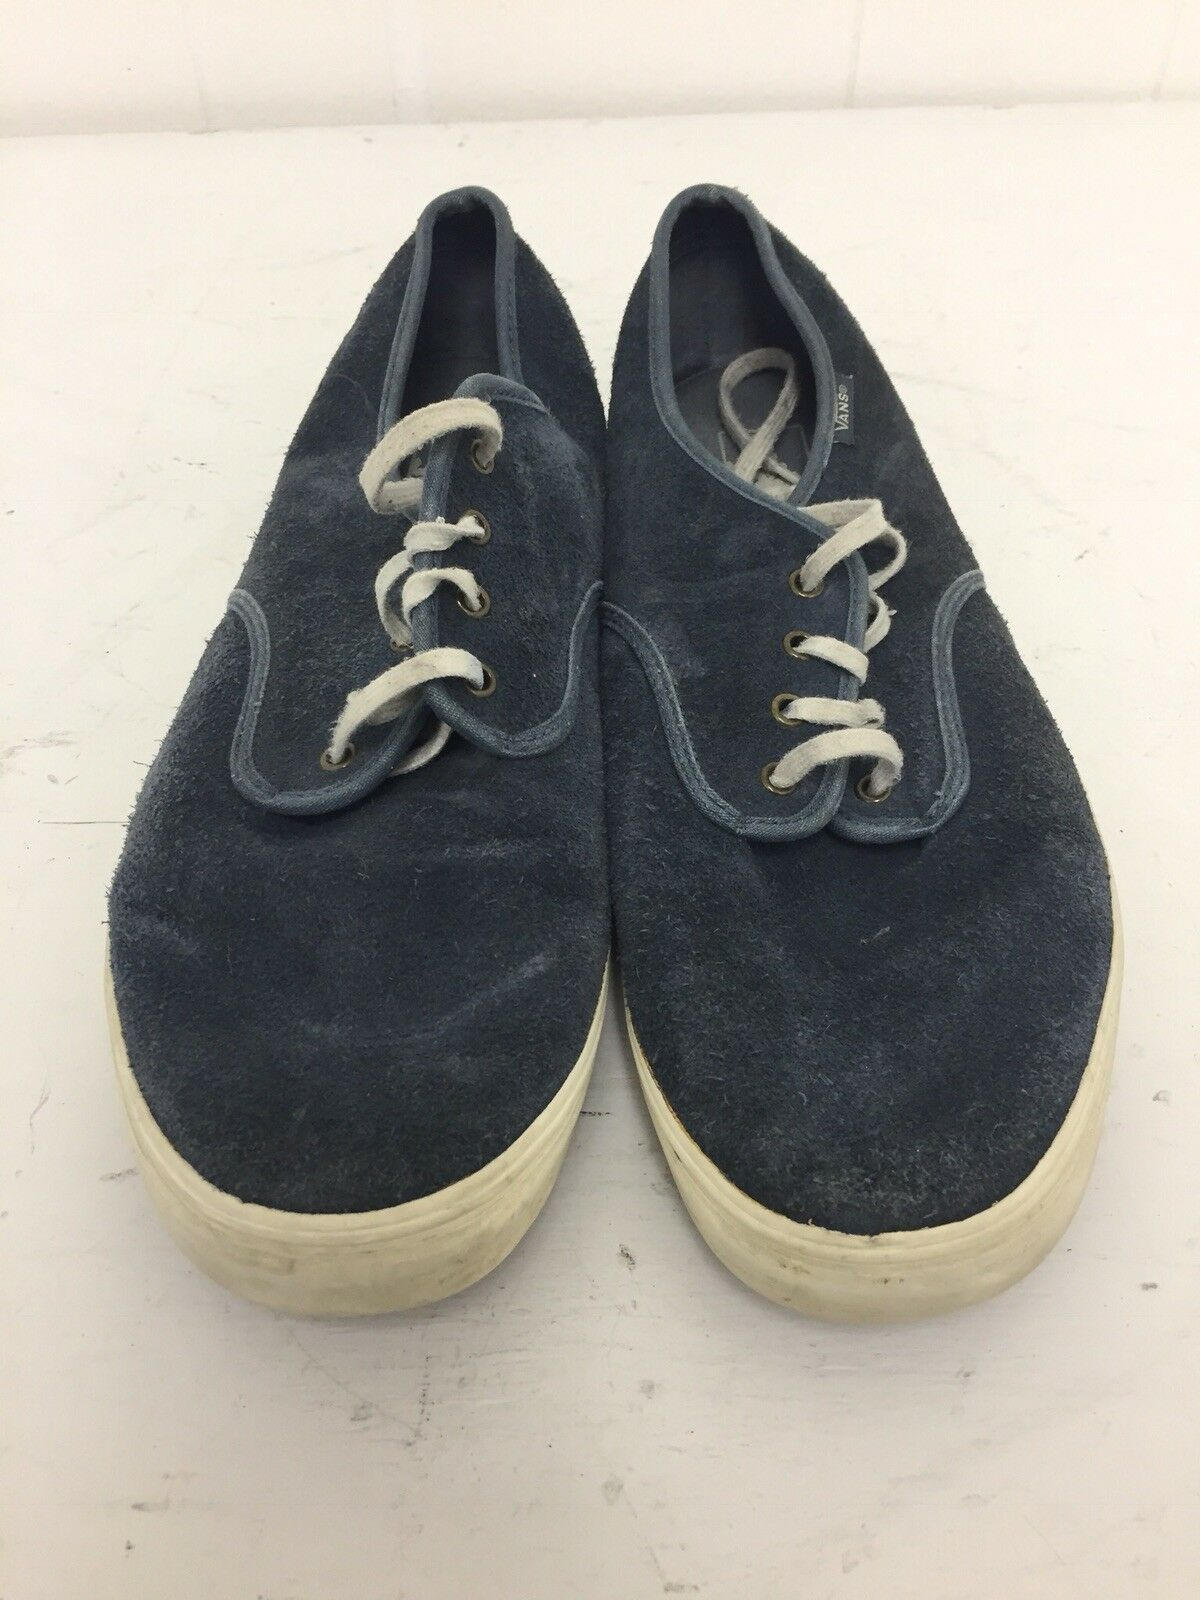 bluee Suede Vans Mens Size 12 Used Great Condition